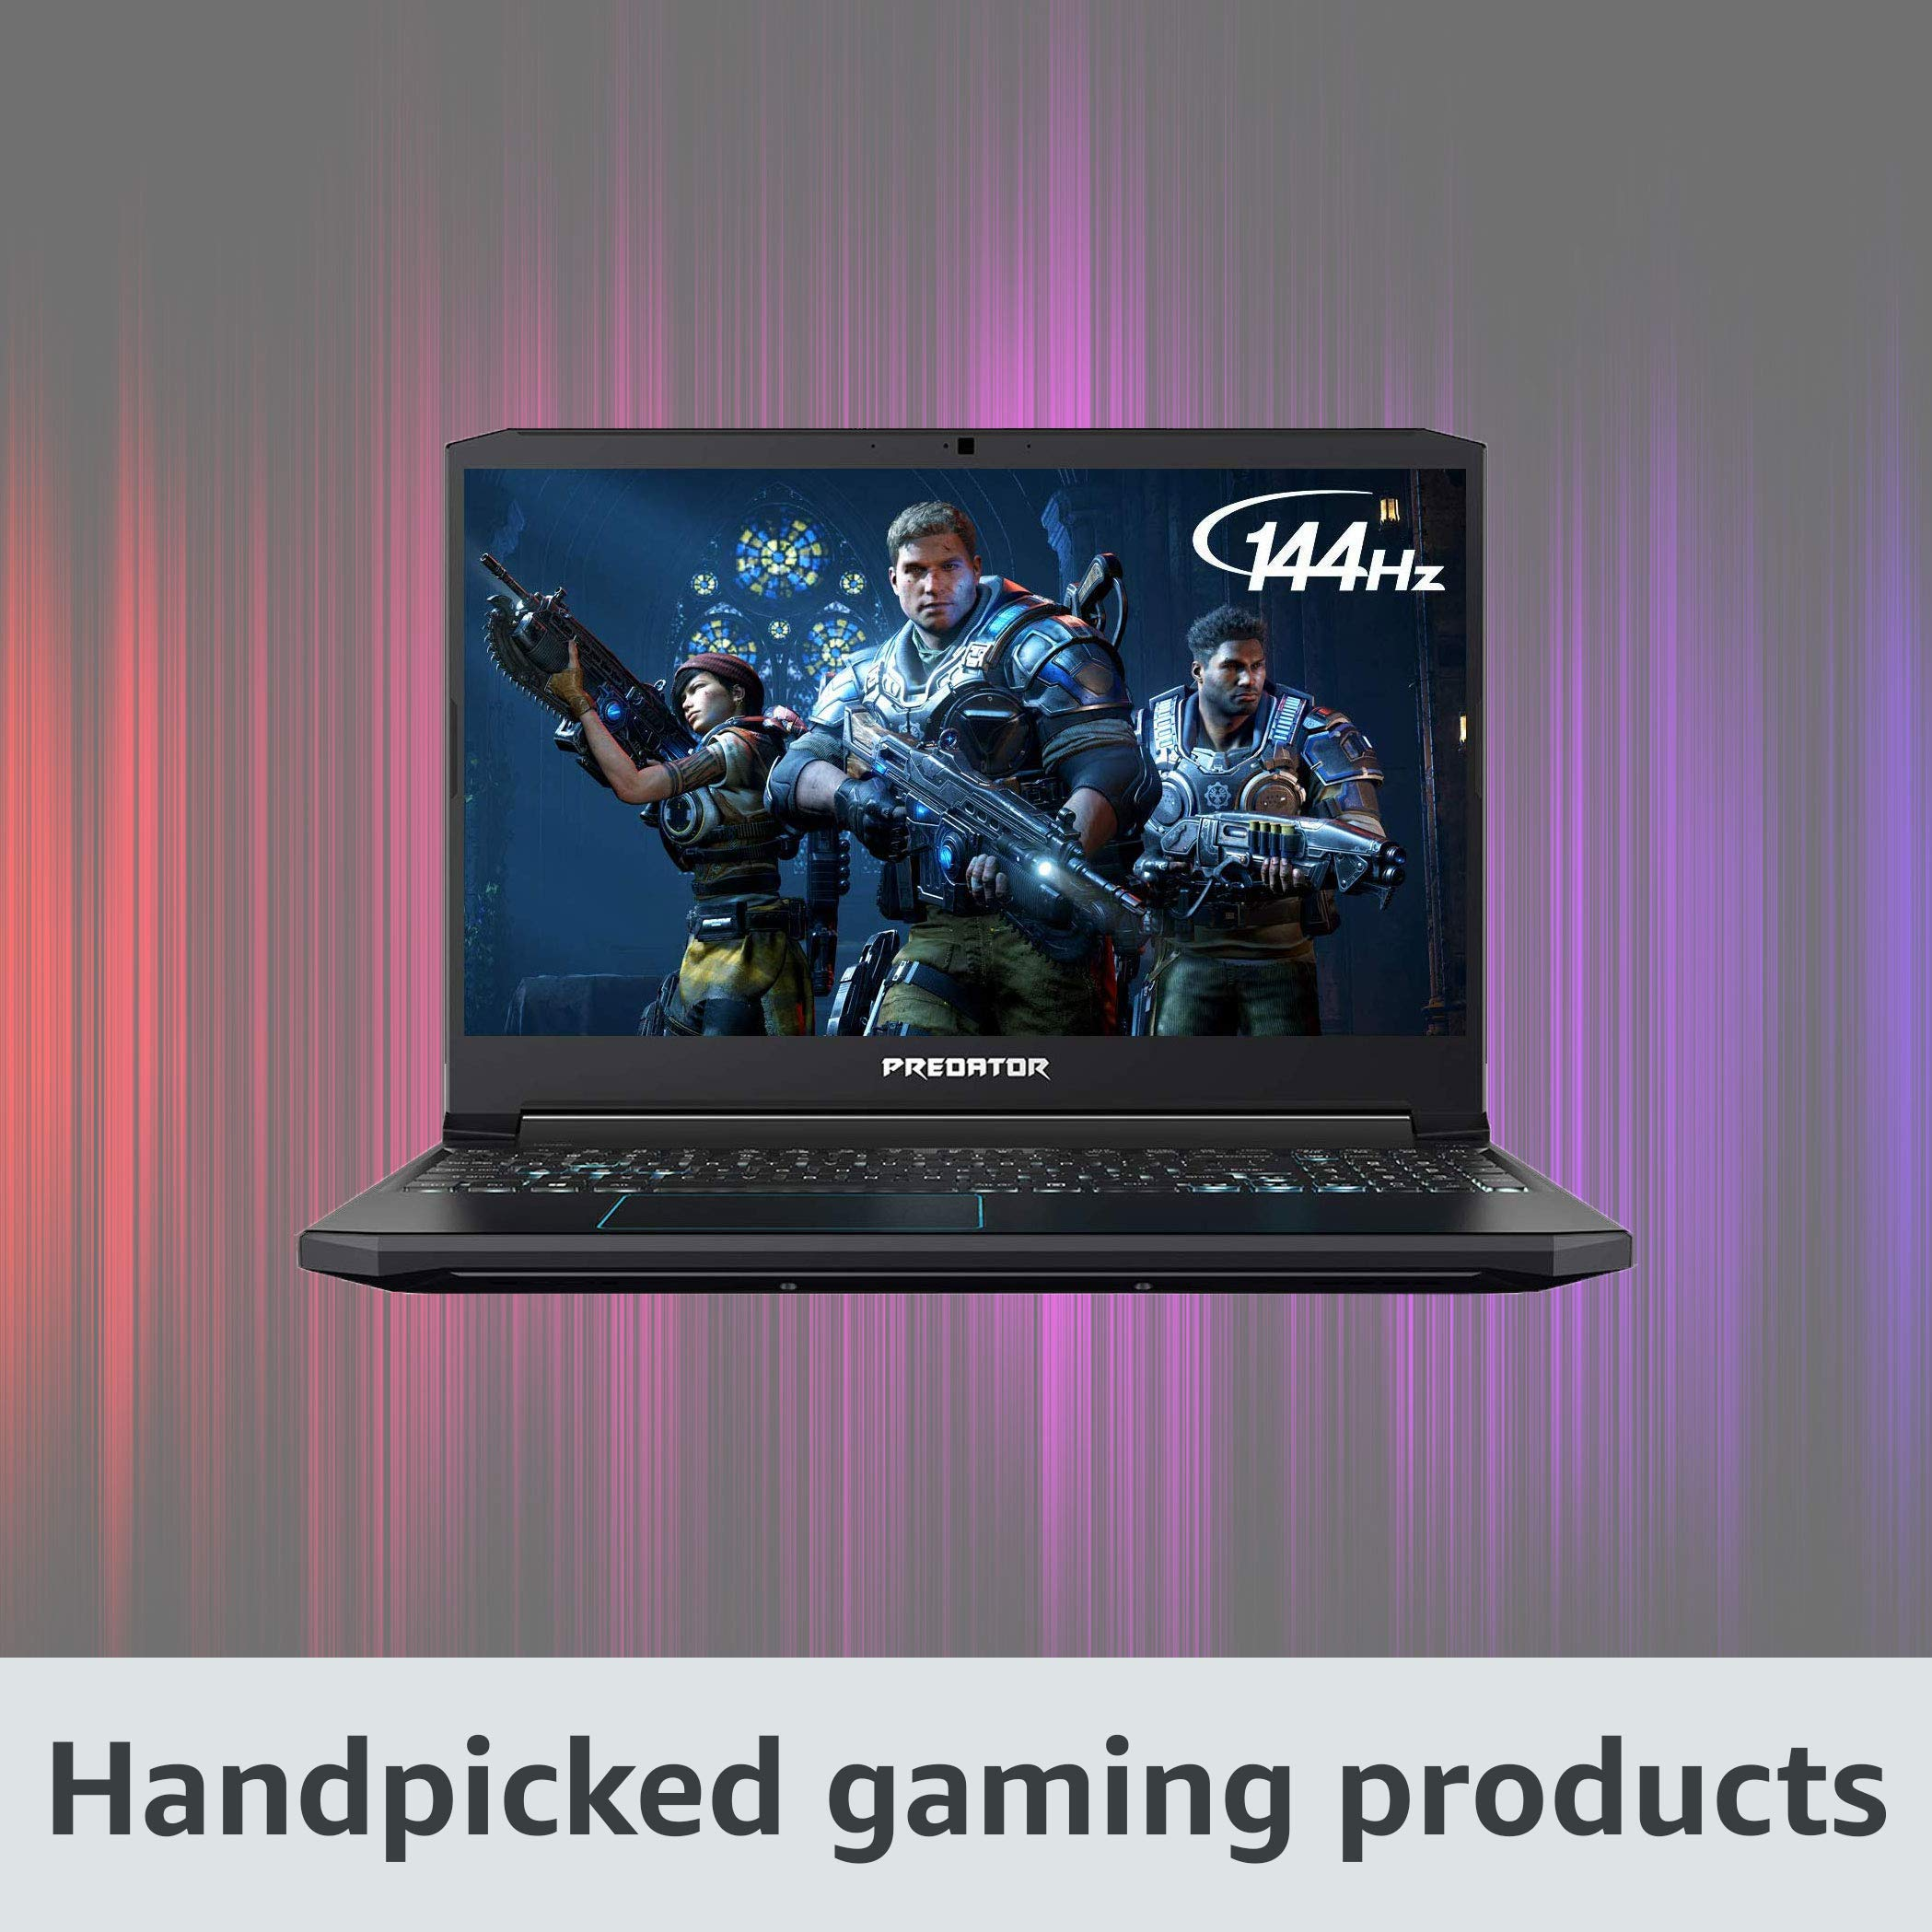 Handpicked gaming products